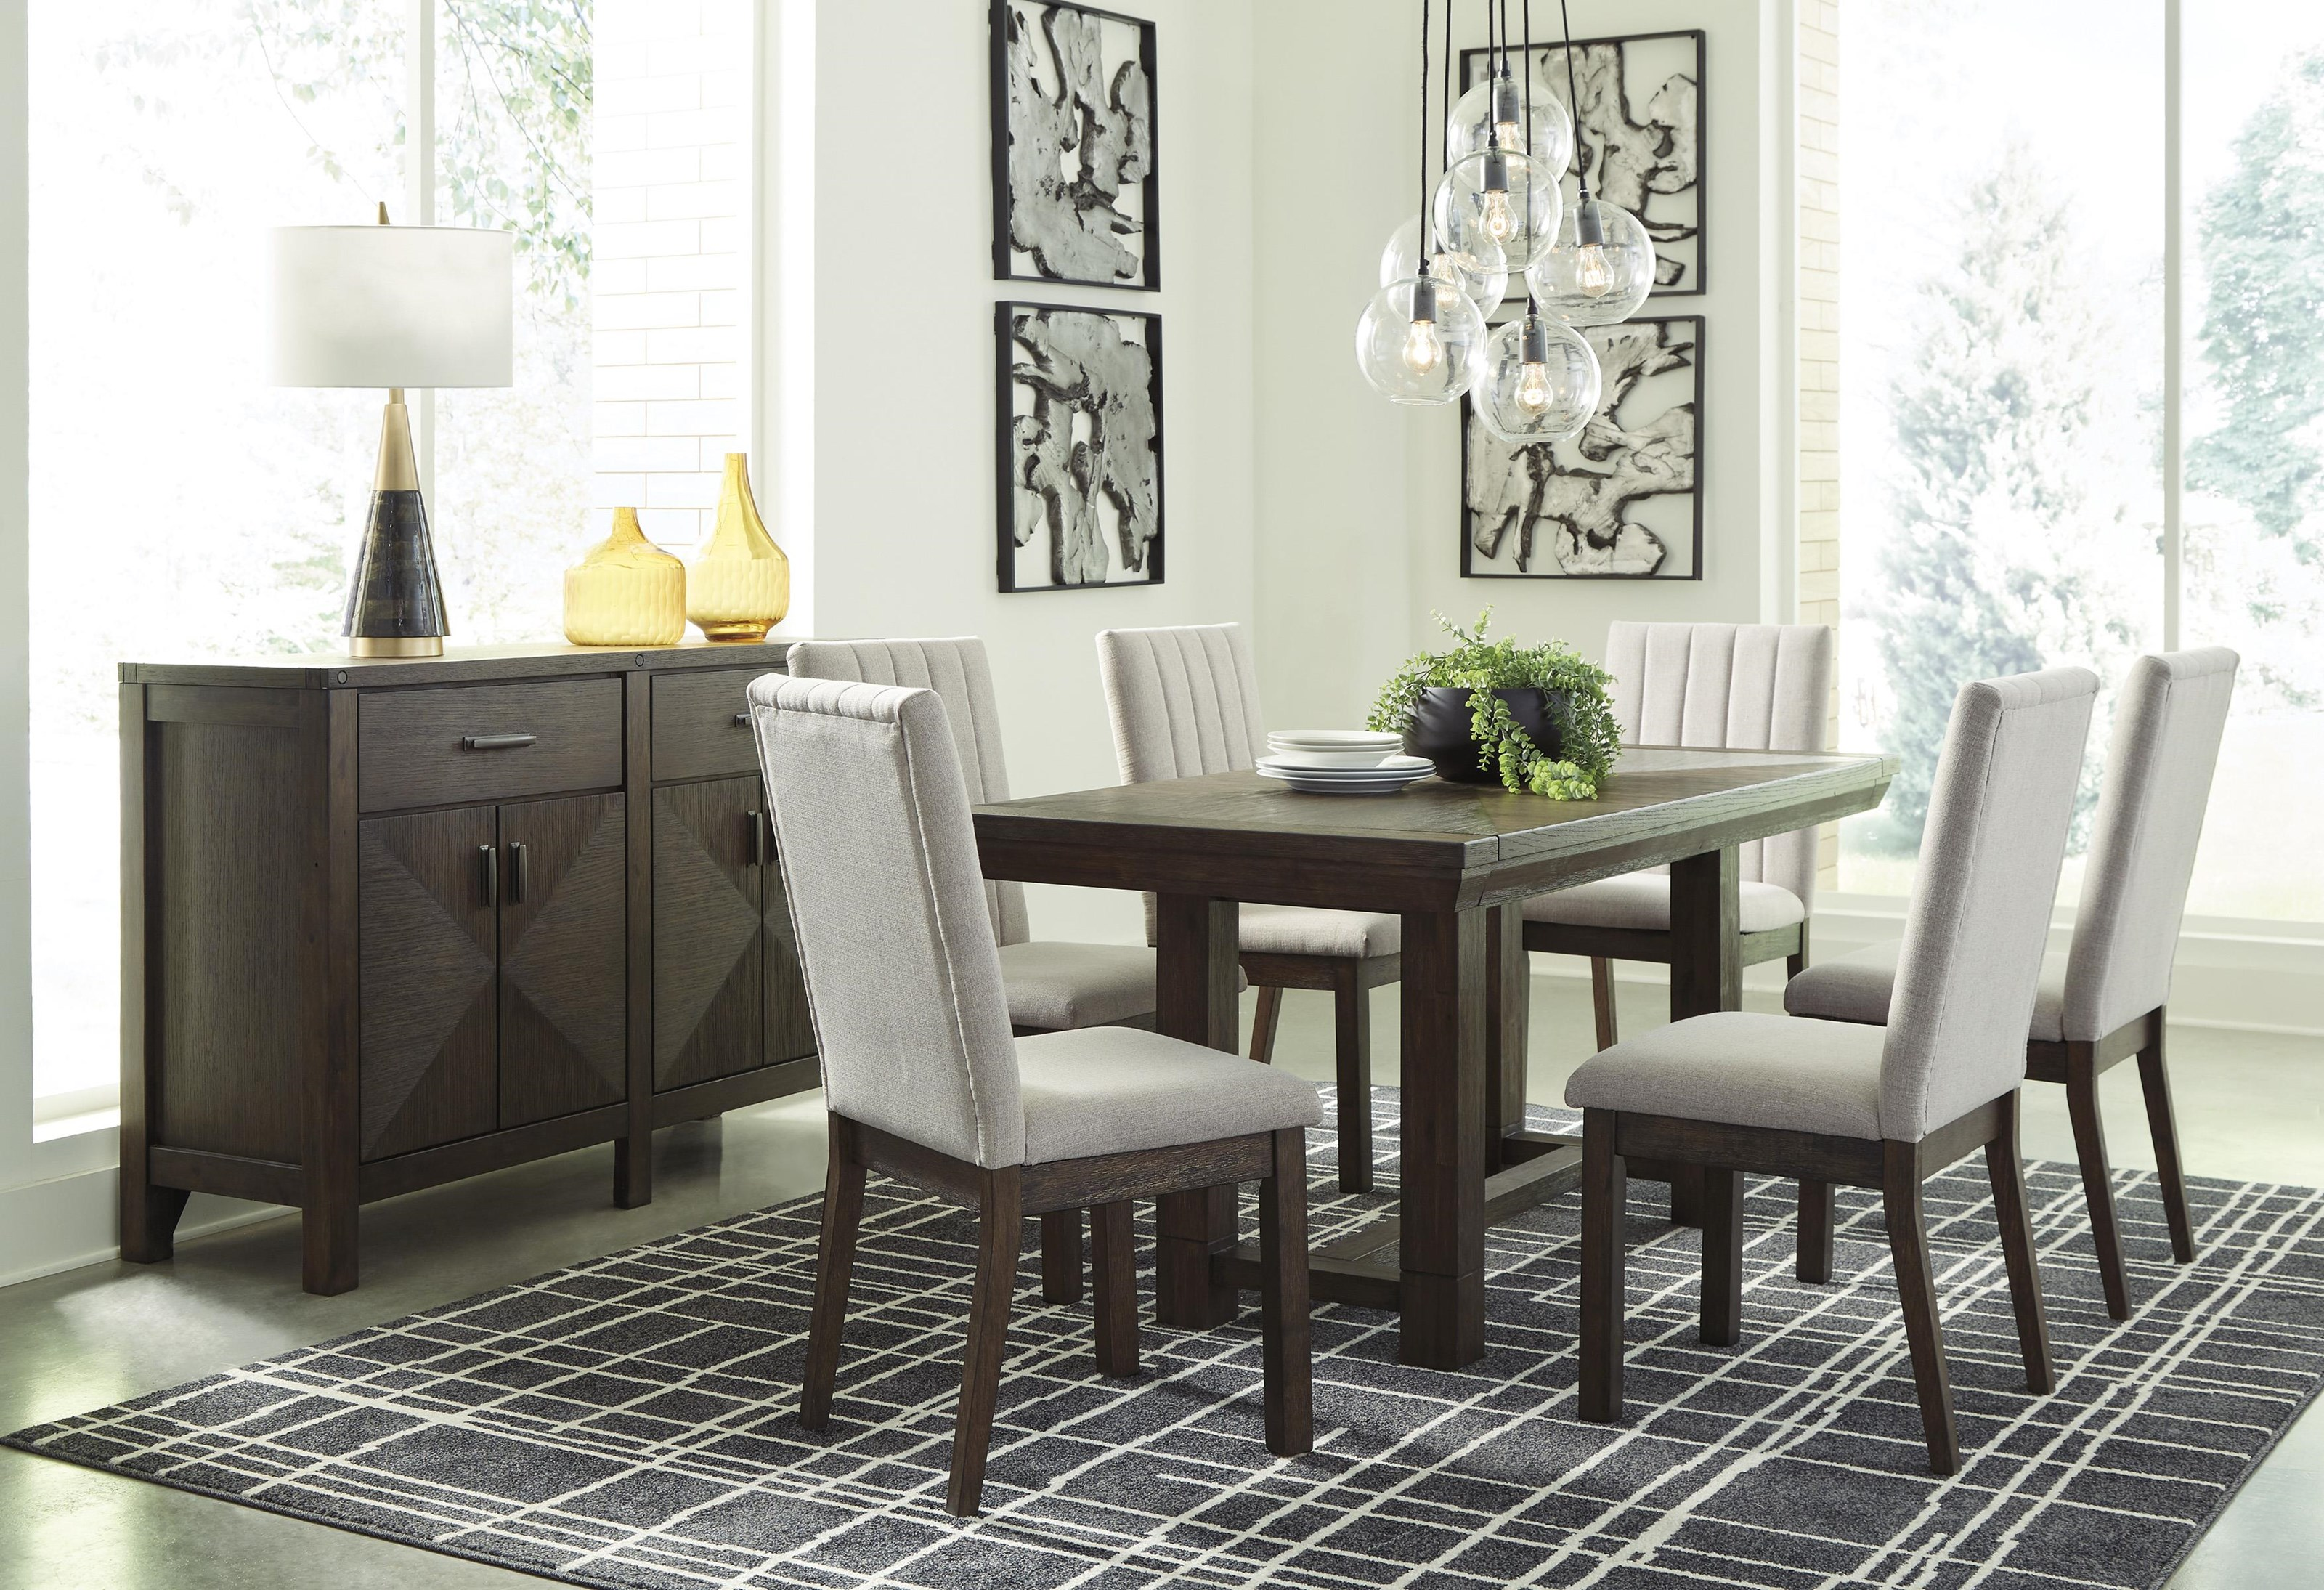 Ashley Furniture Dellbeck D748-45+6X01+60 8 PC Table, 6 ...